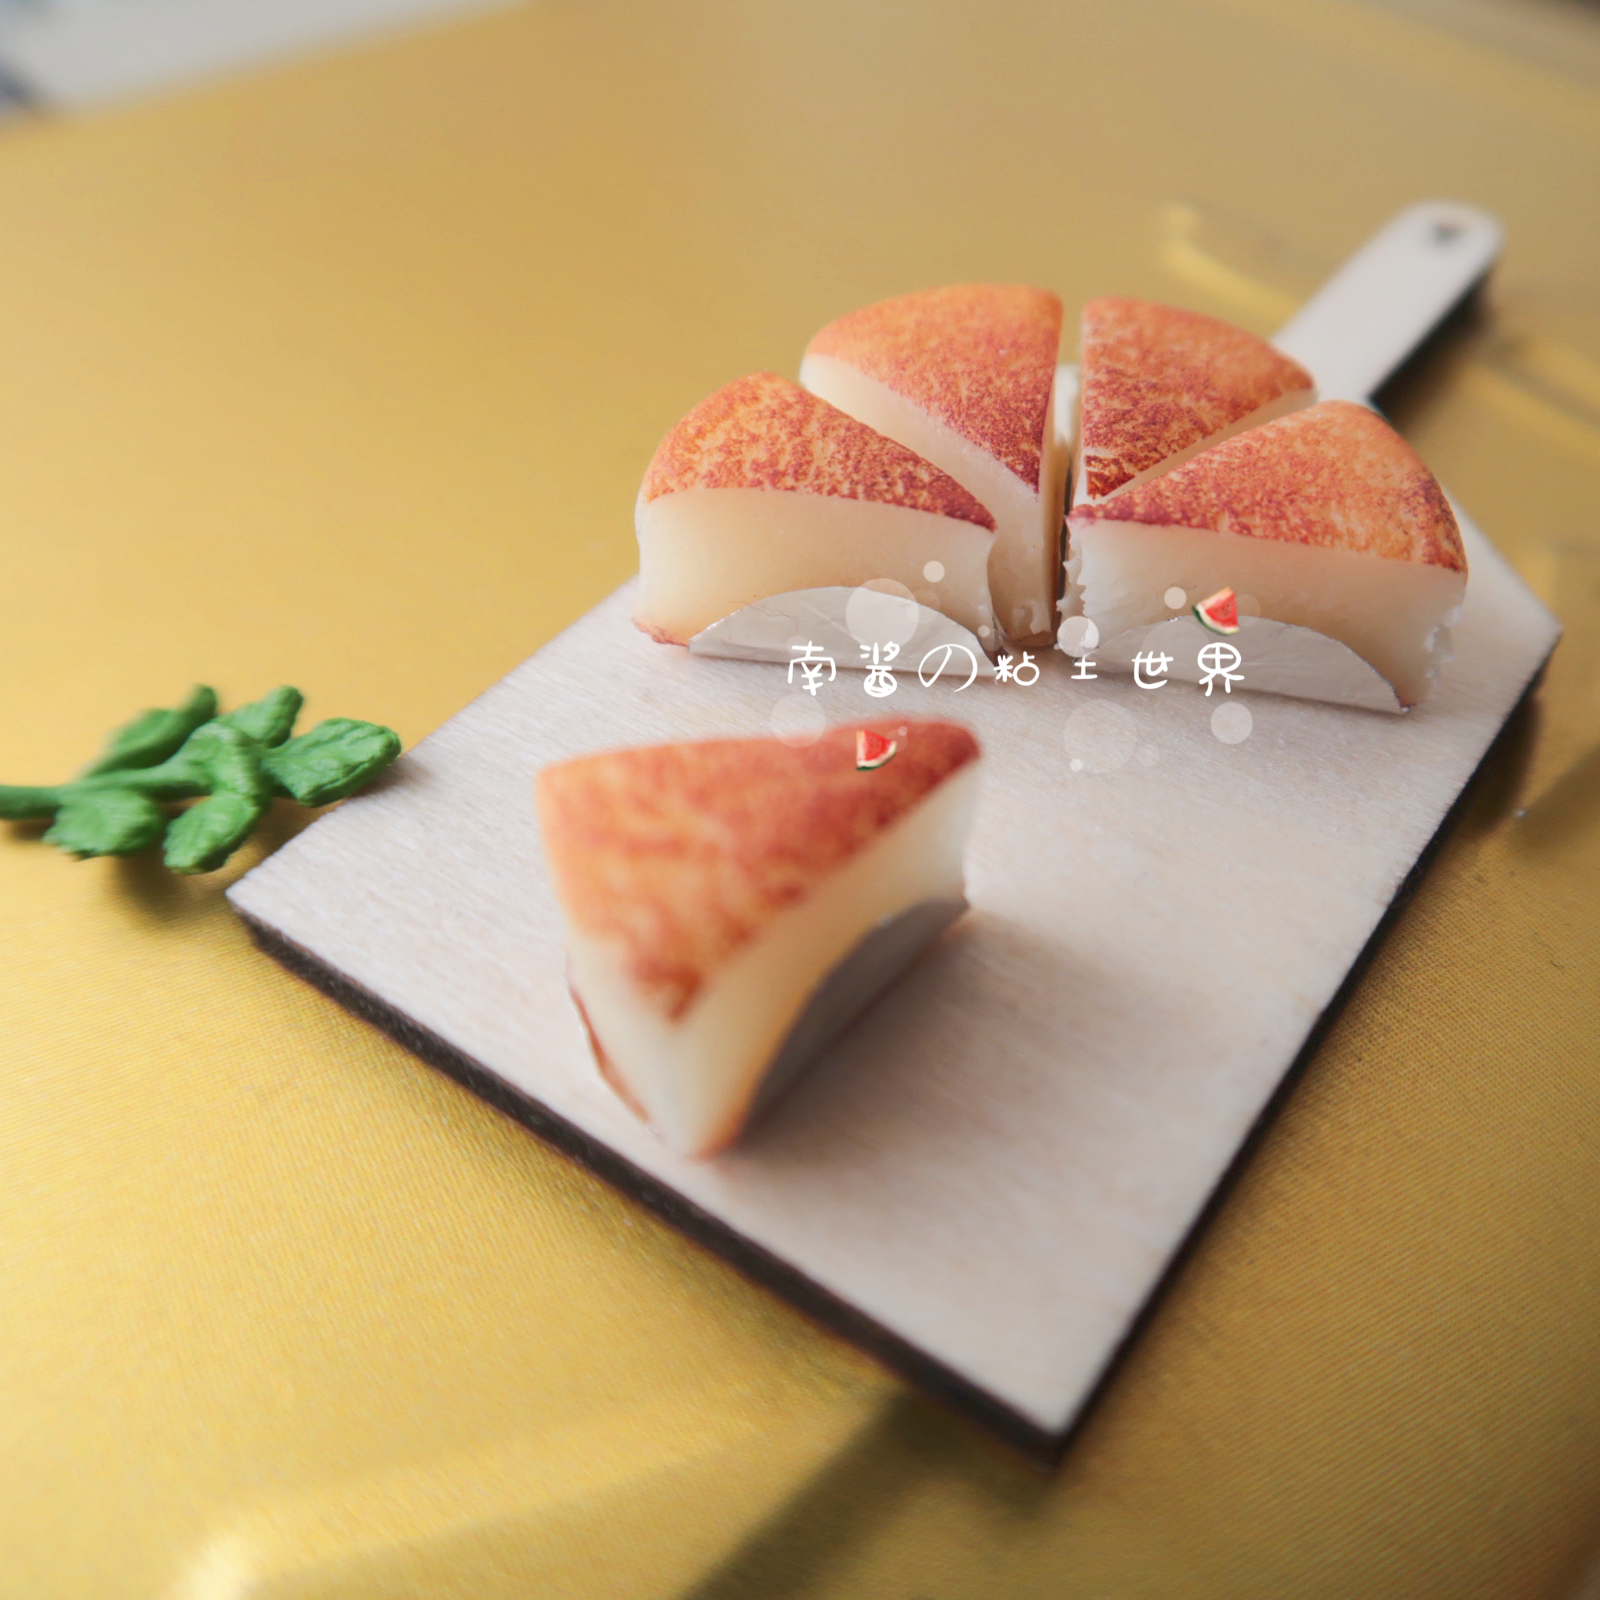 Miniature food and play manual puff ob11 mini furniture scene 12 points 6 points doll house accessories BJD